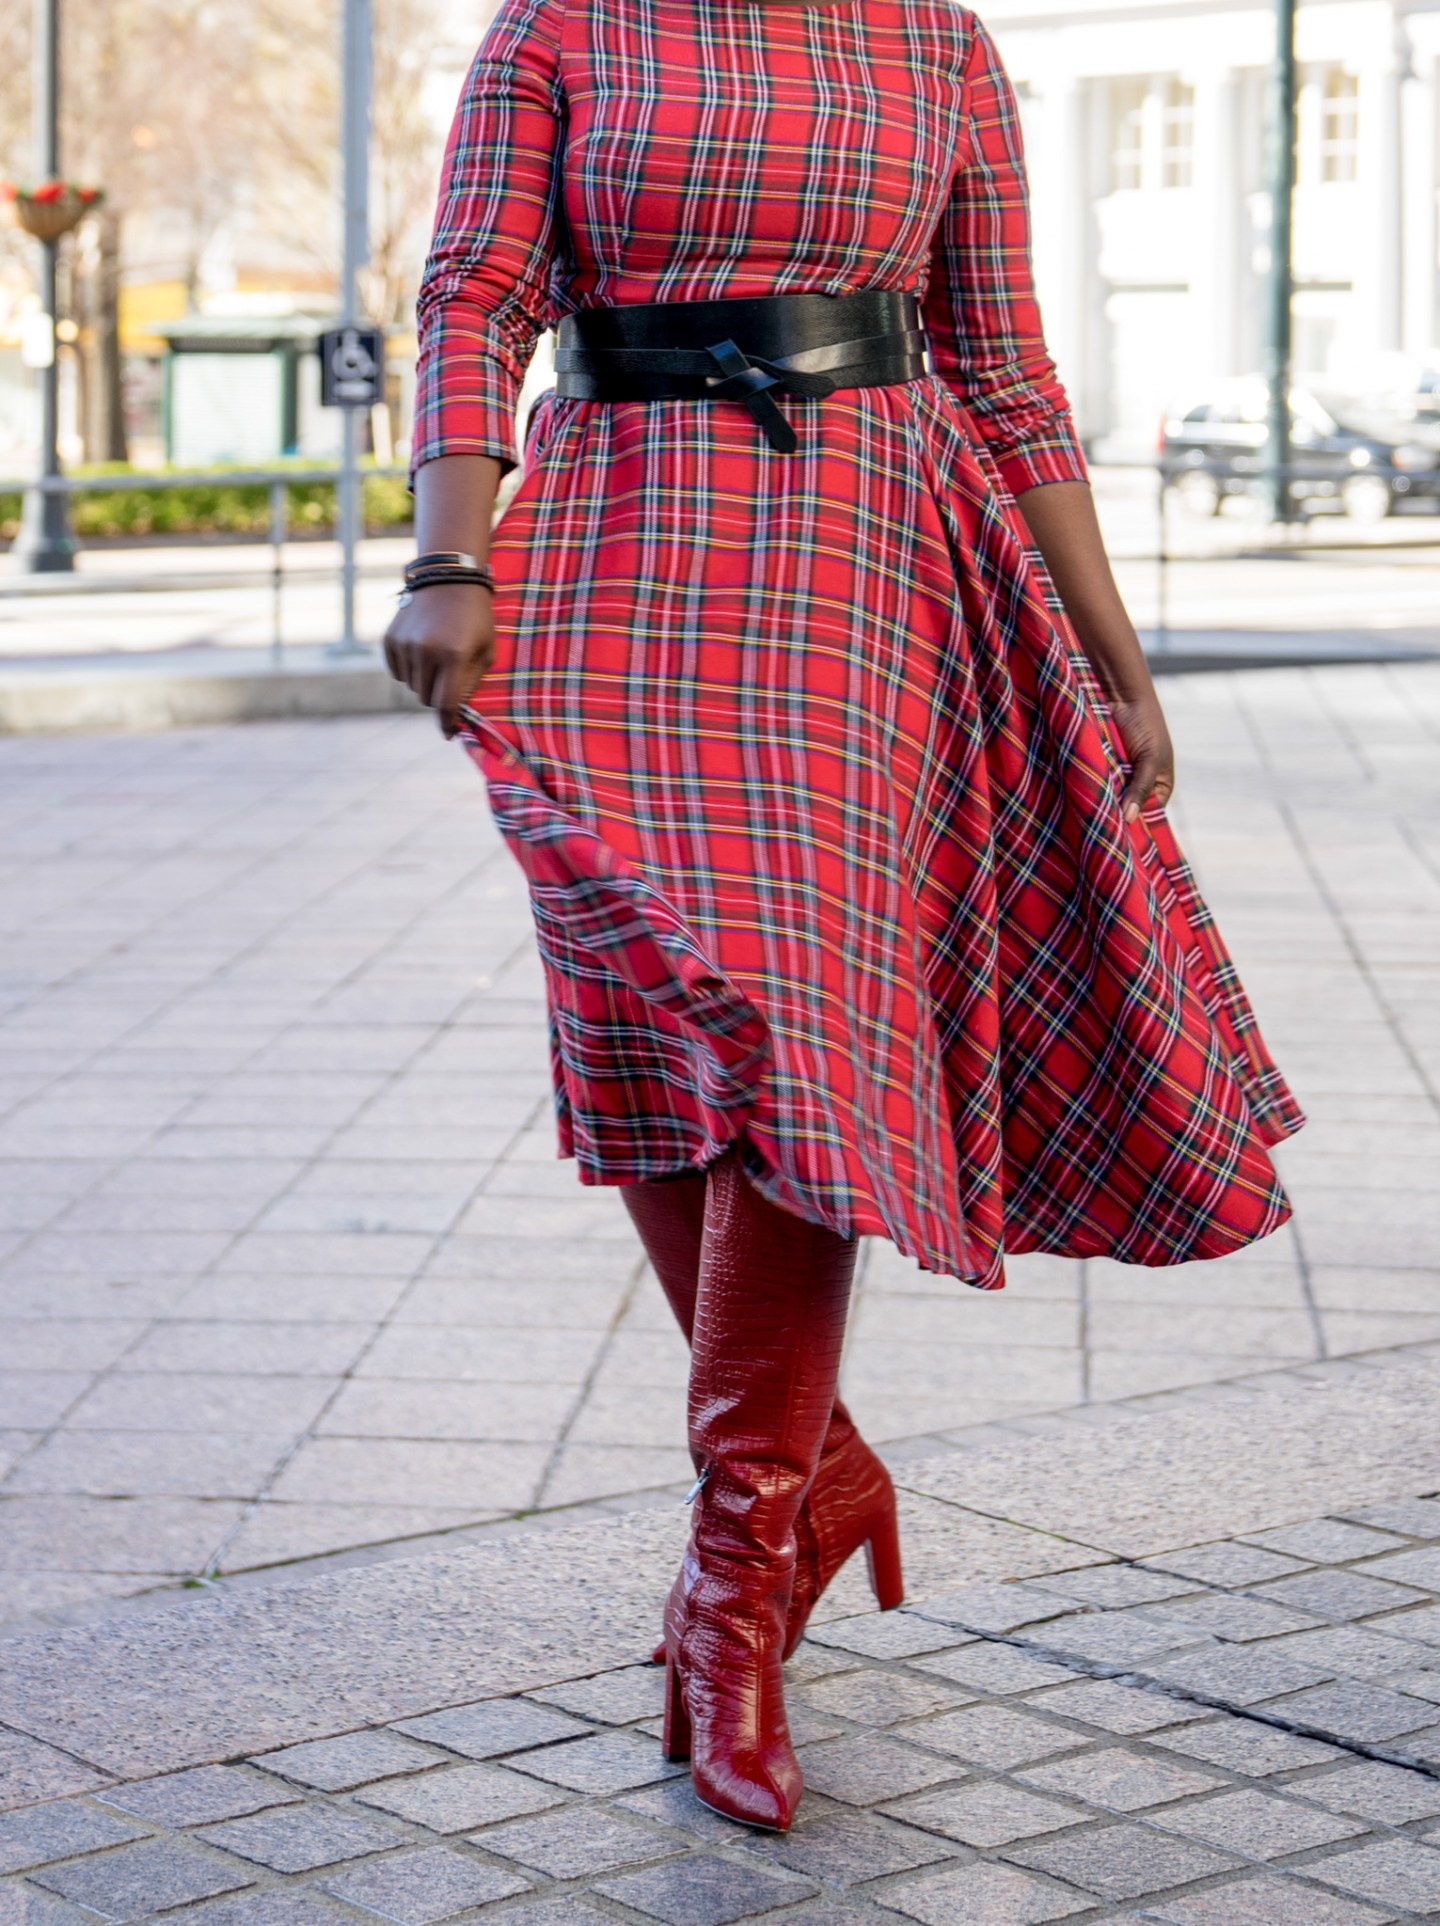 woman wearing red plaid dress and red boots and black belt.